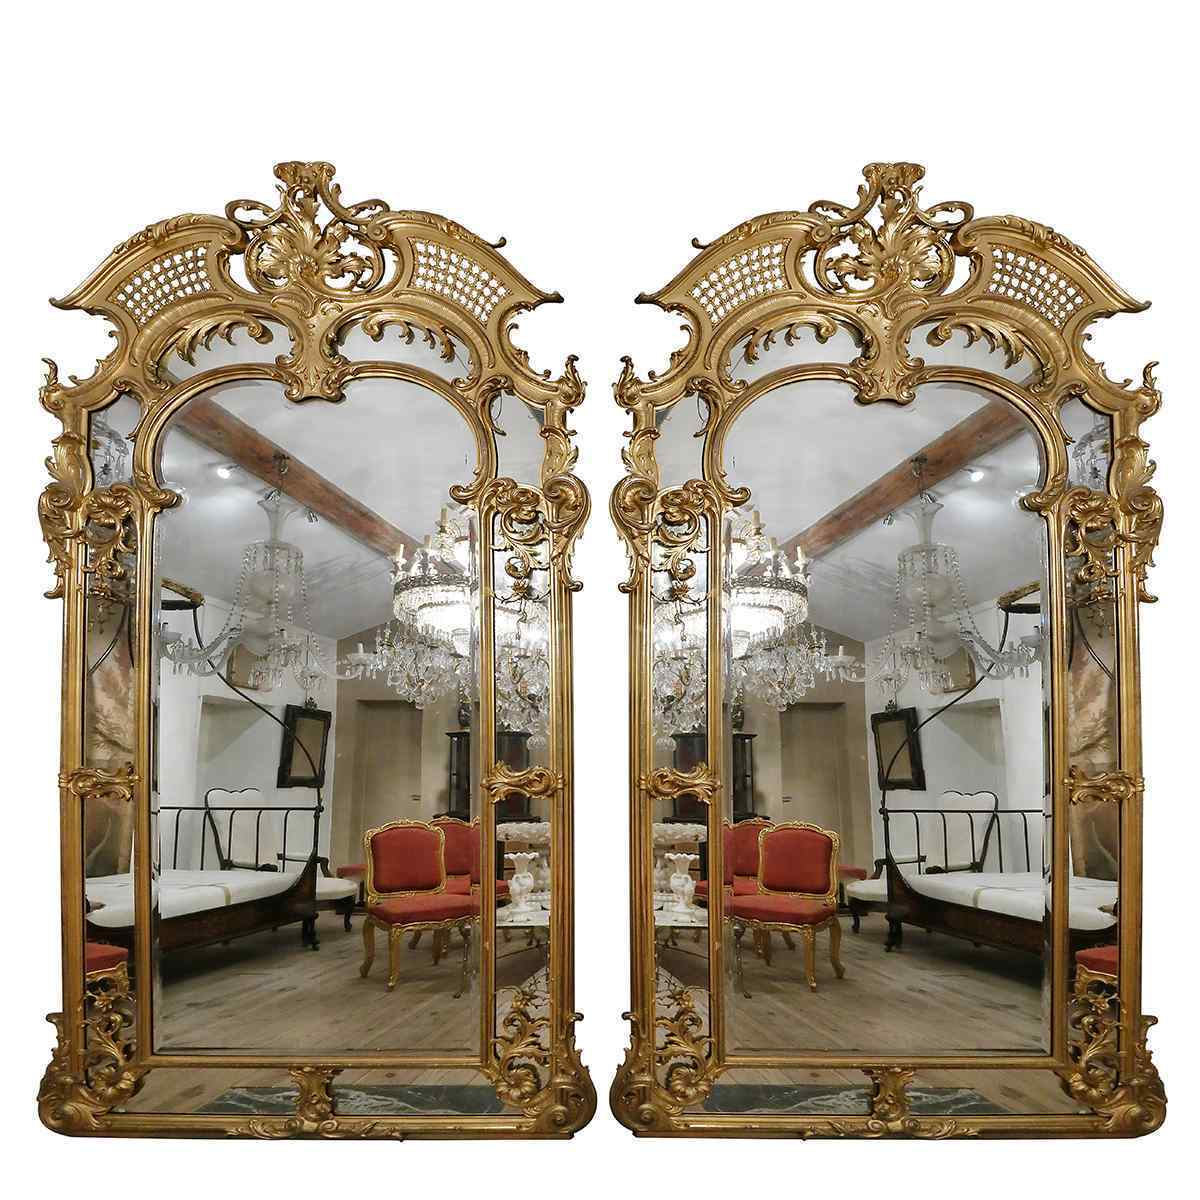 A Pair of Château Mirrors in the Regency Style